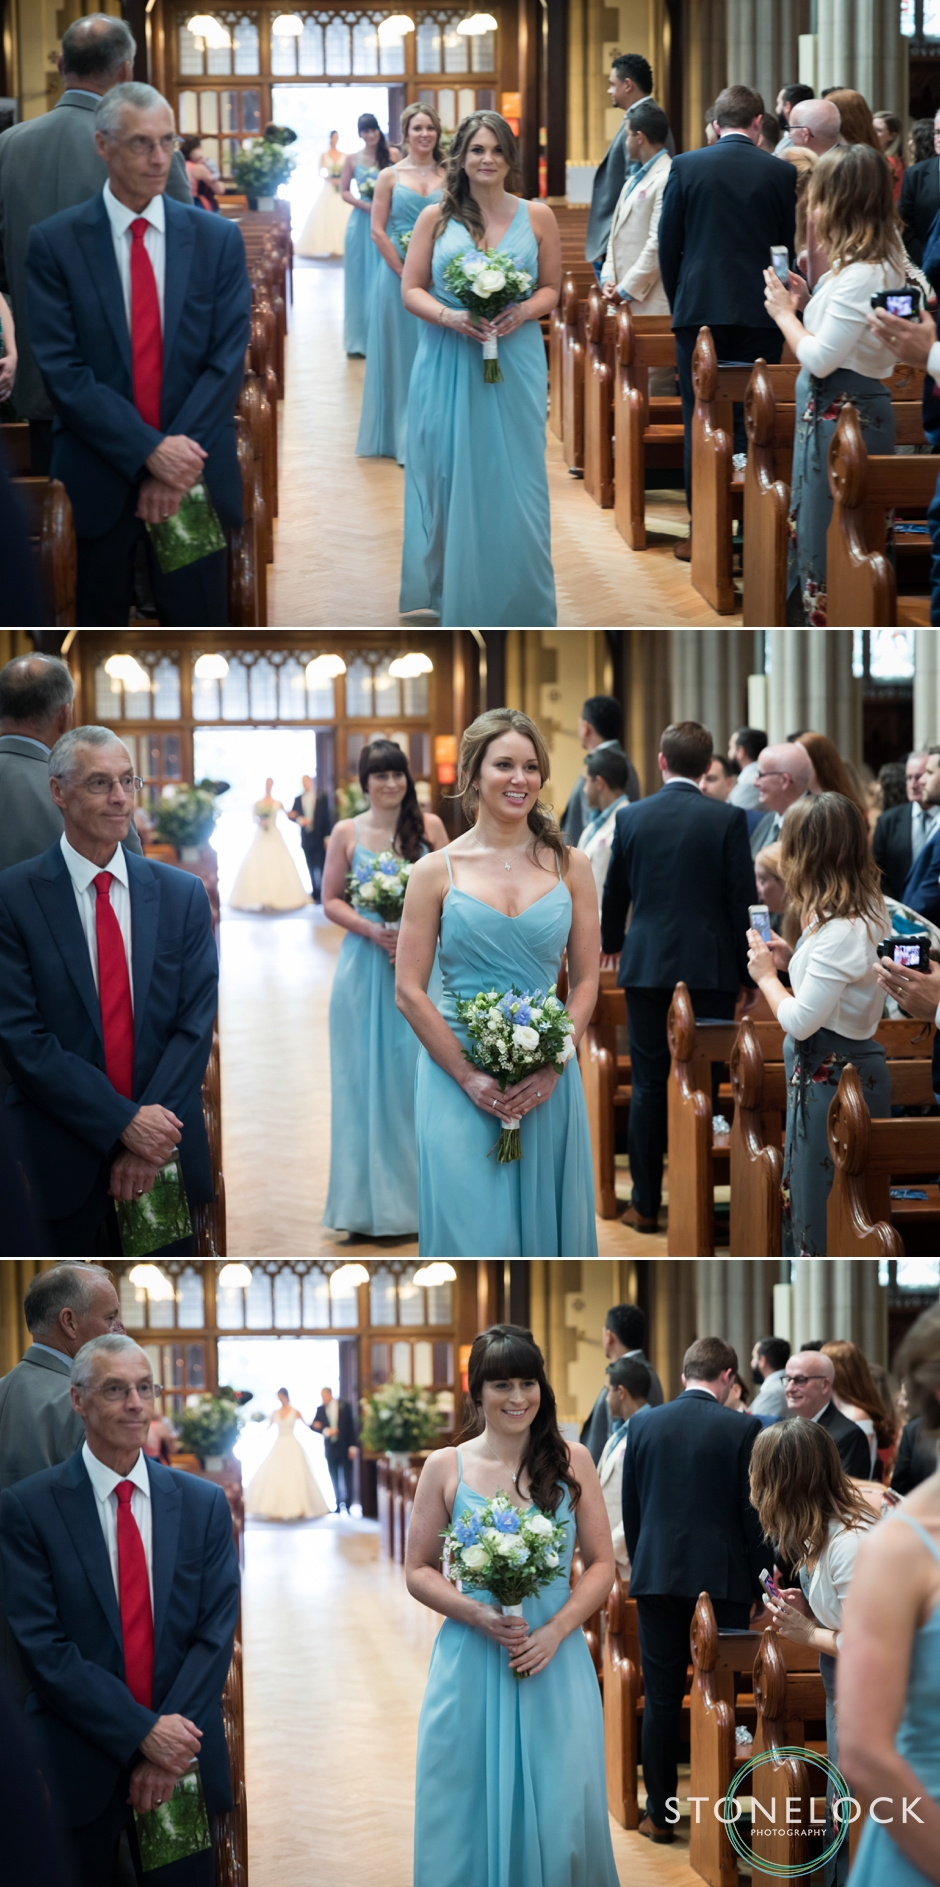 Wedding at Sacred Heart Church in Edge Hill Wimbledon